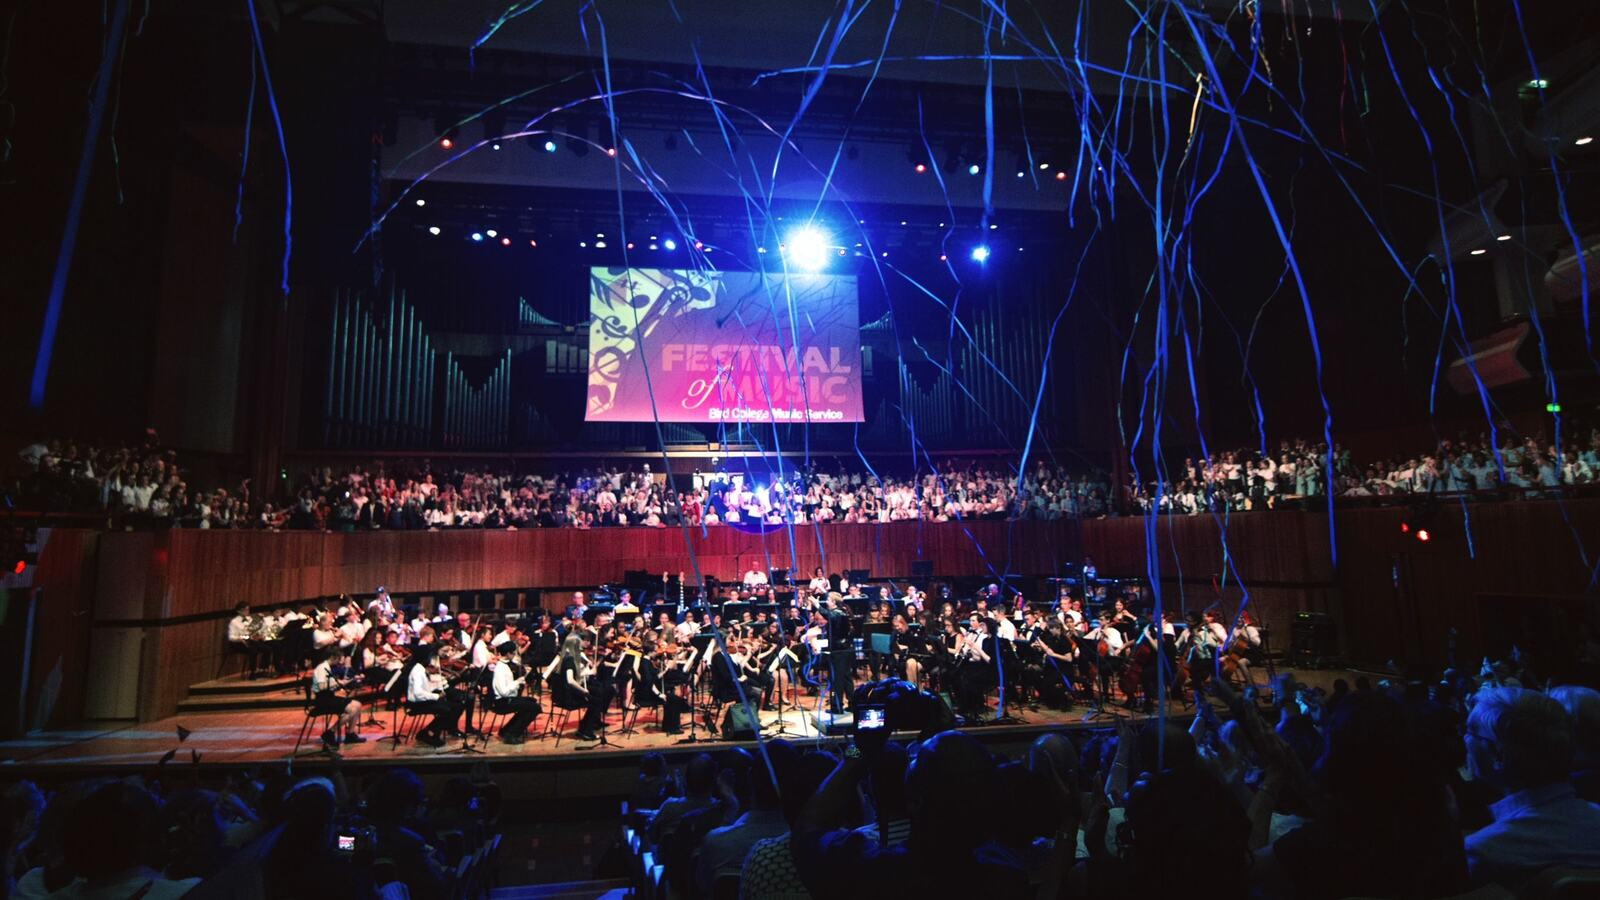 Bird College Festival of Music Concert in Royal Festival Hall